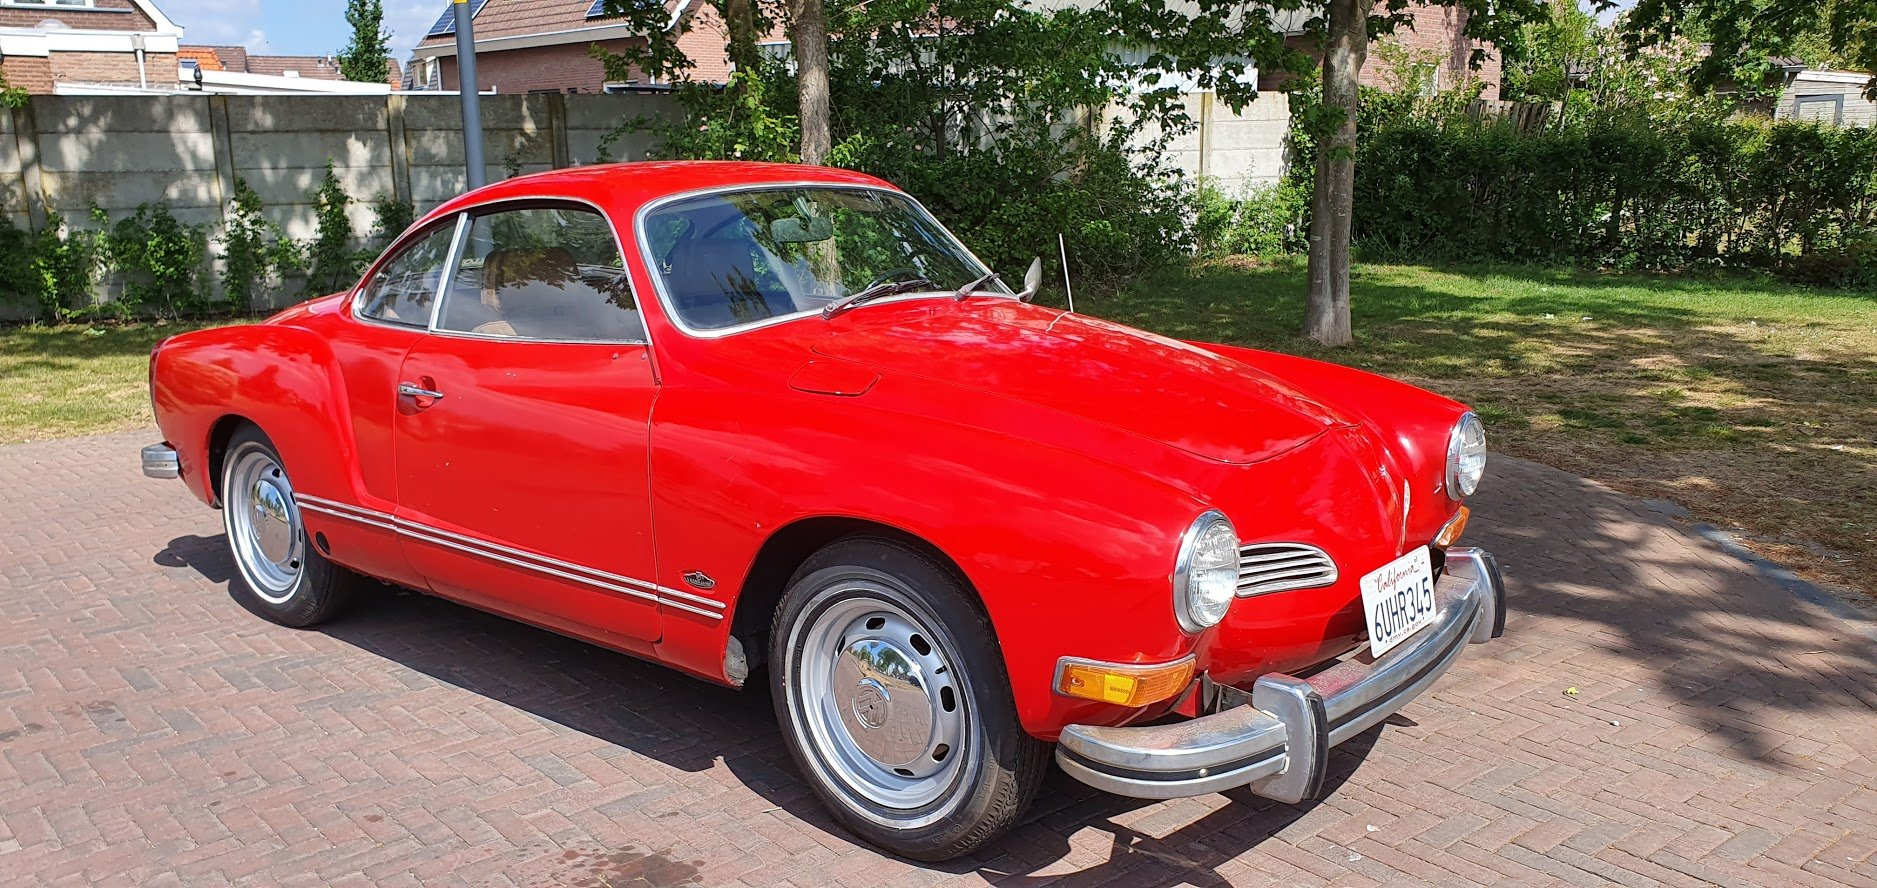 1972 Volkswagen Karmann Ghia Coupe,  SOLD (picture 1 of 6)